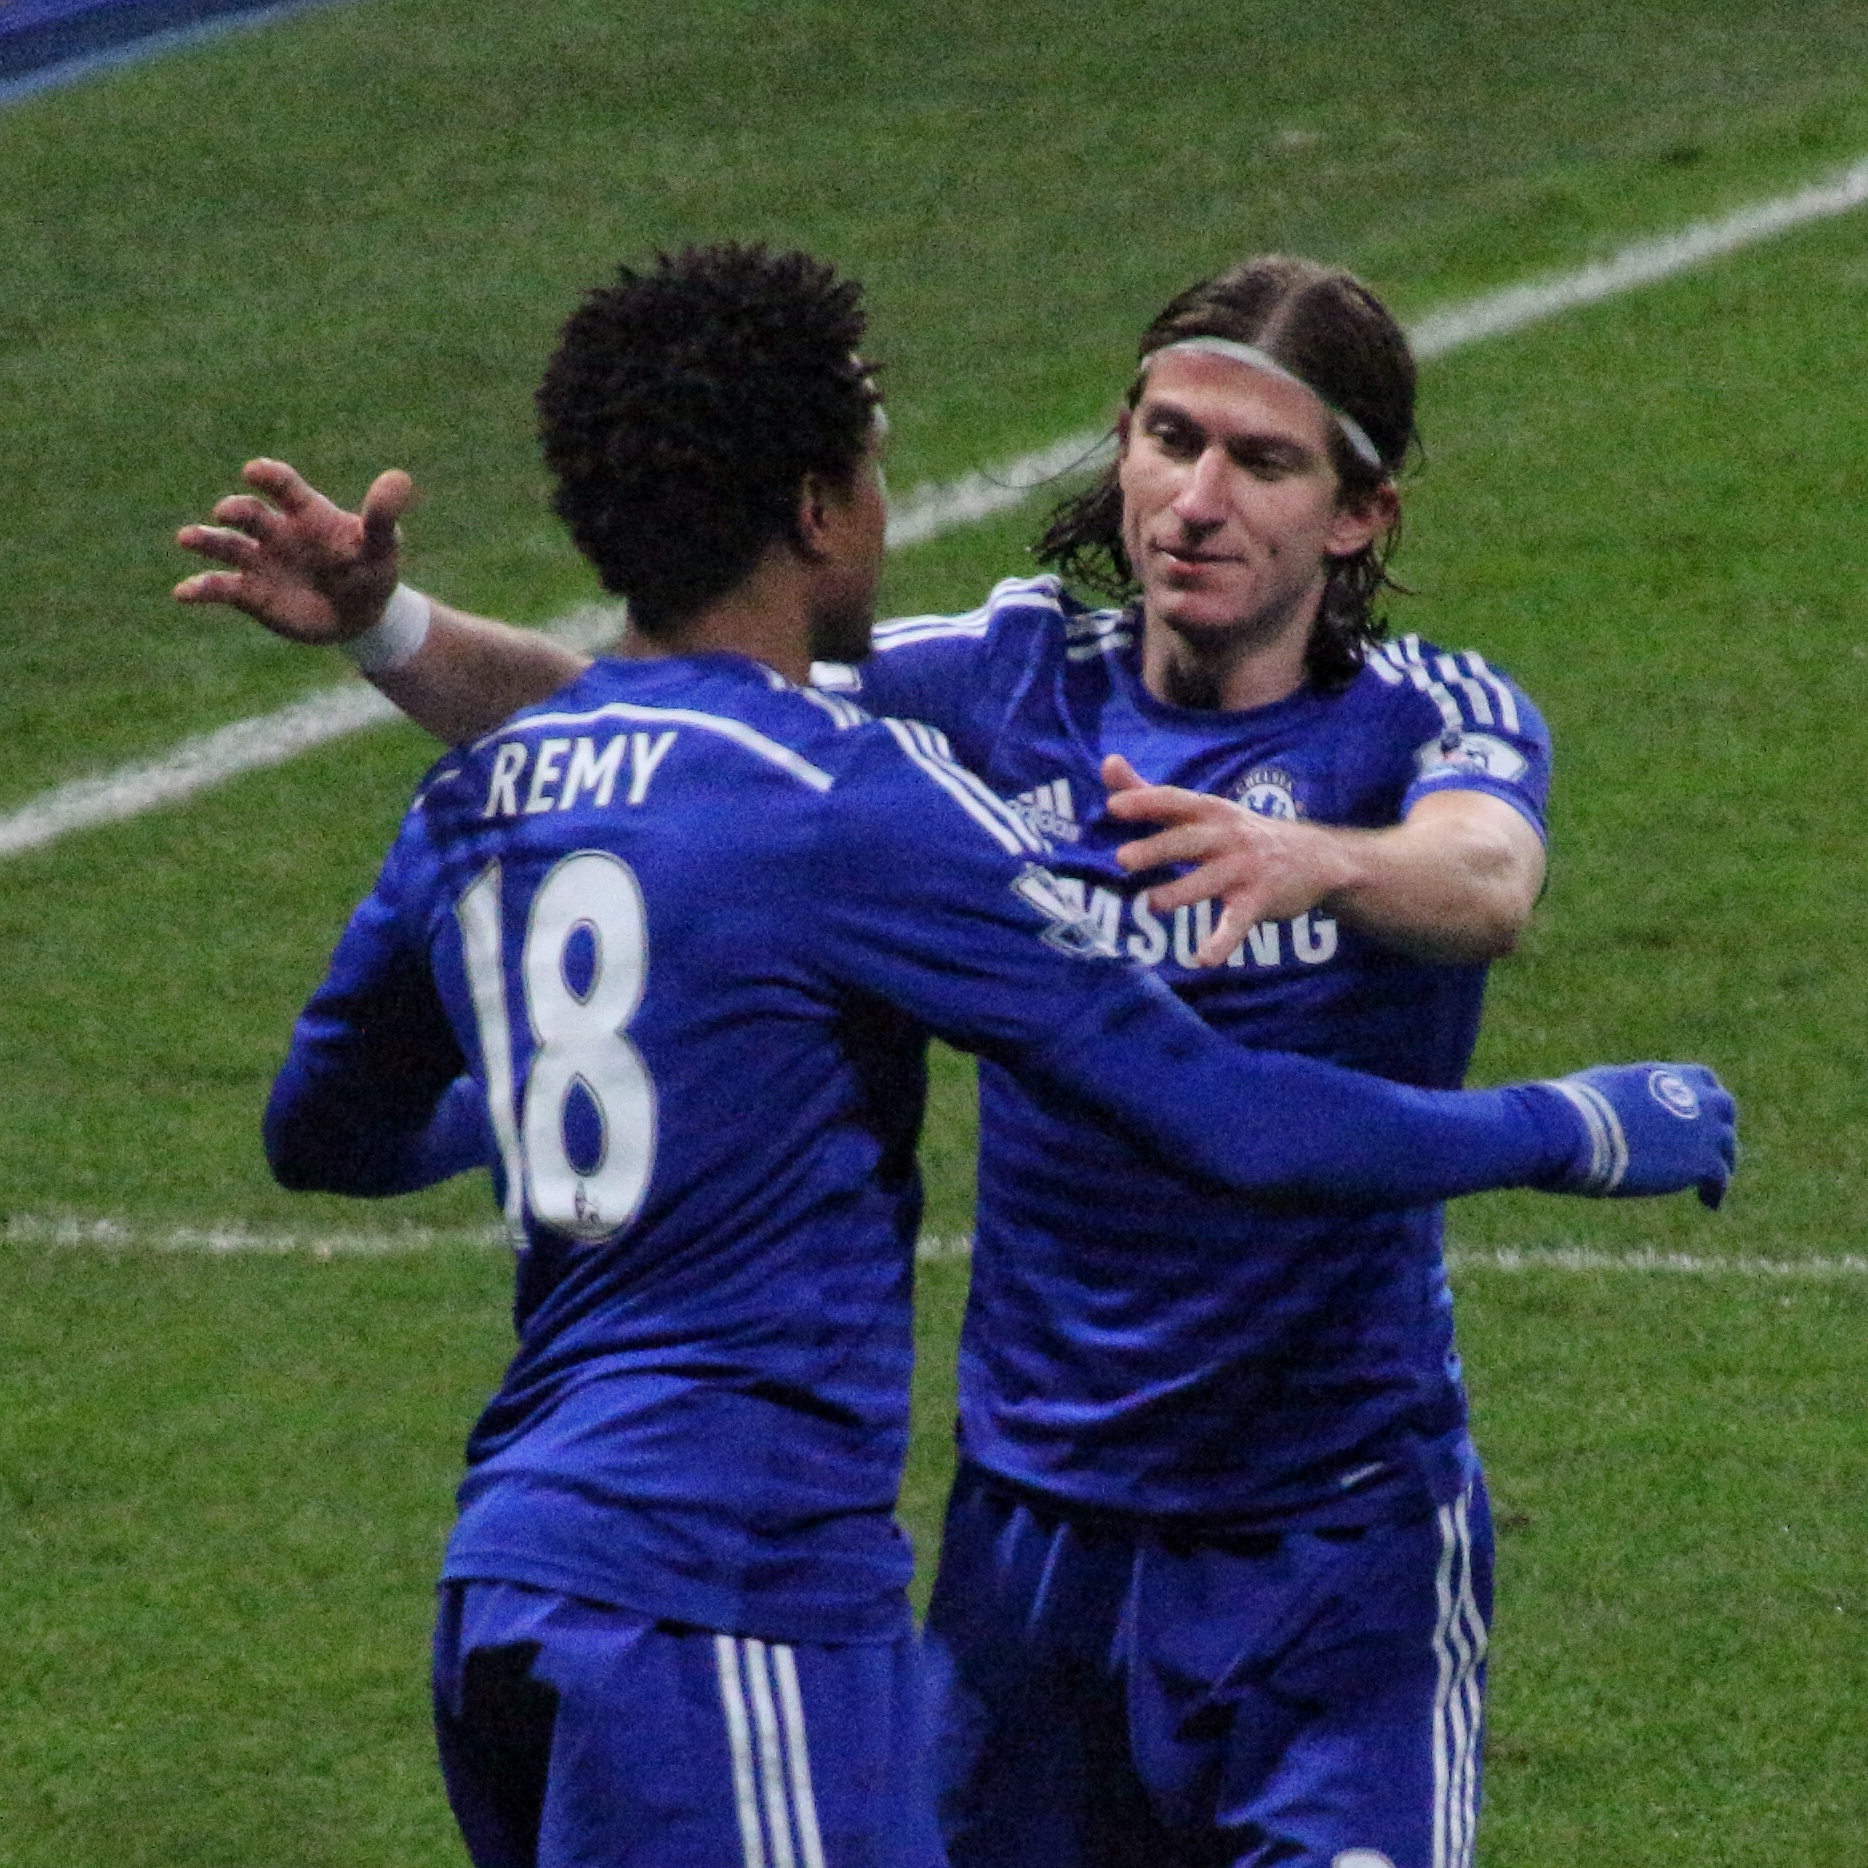 Remy Chelsea Wallpaper Rémy Celebrating With Filipe